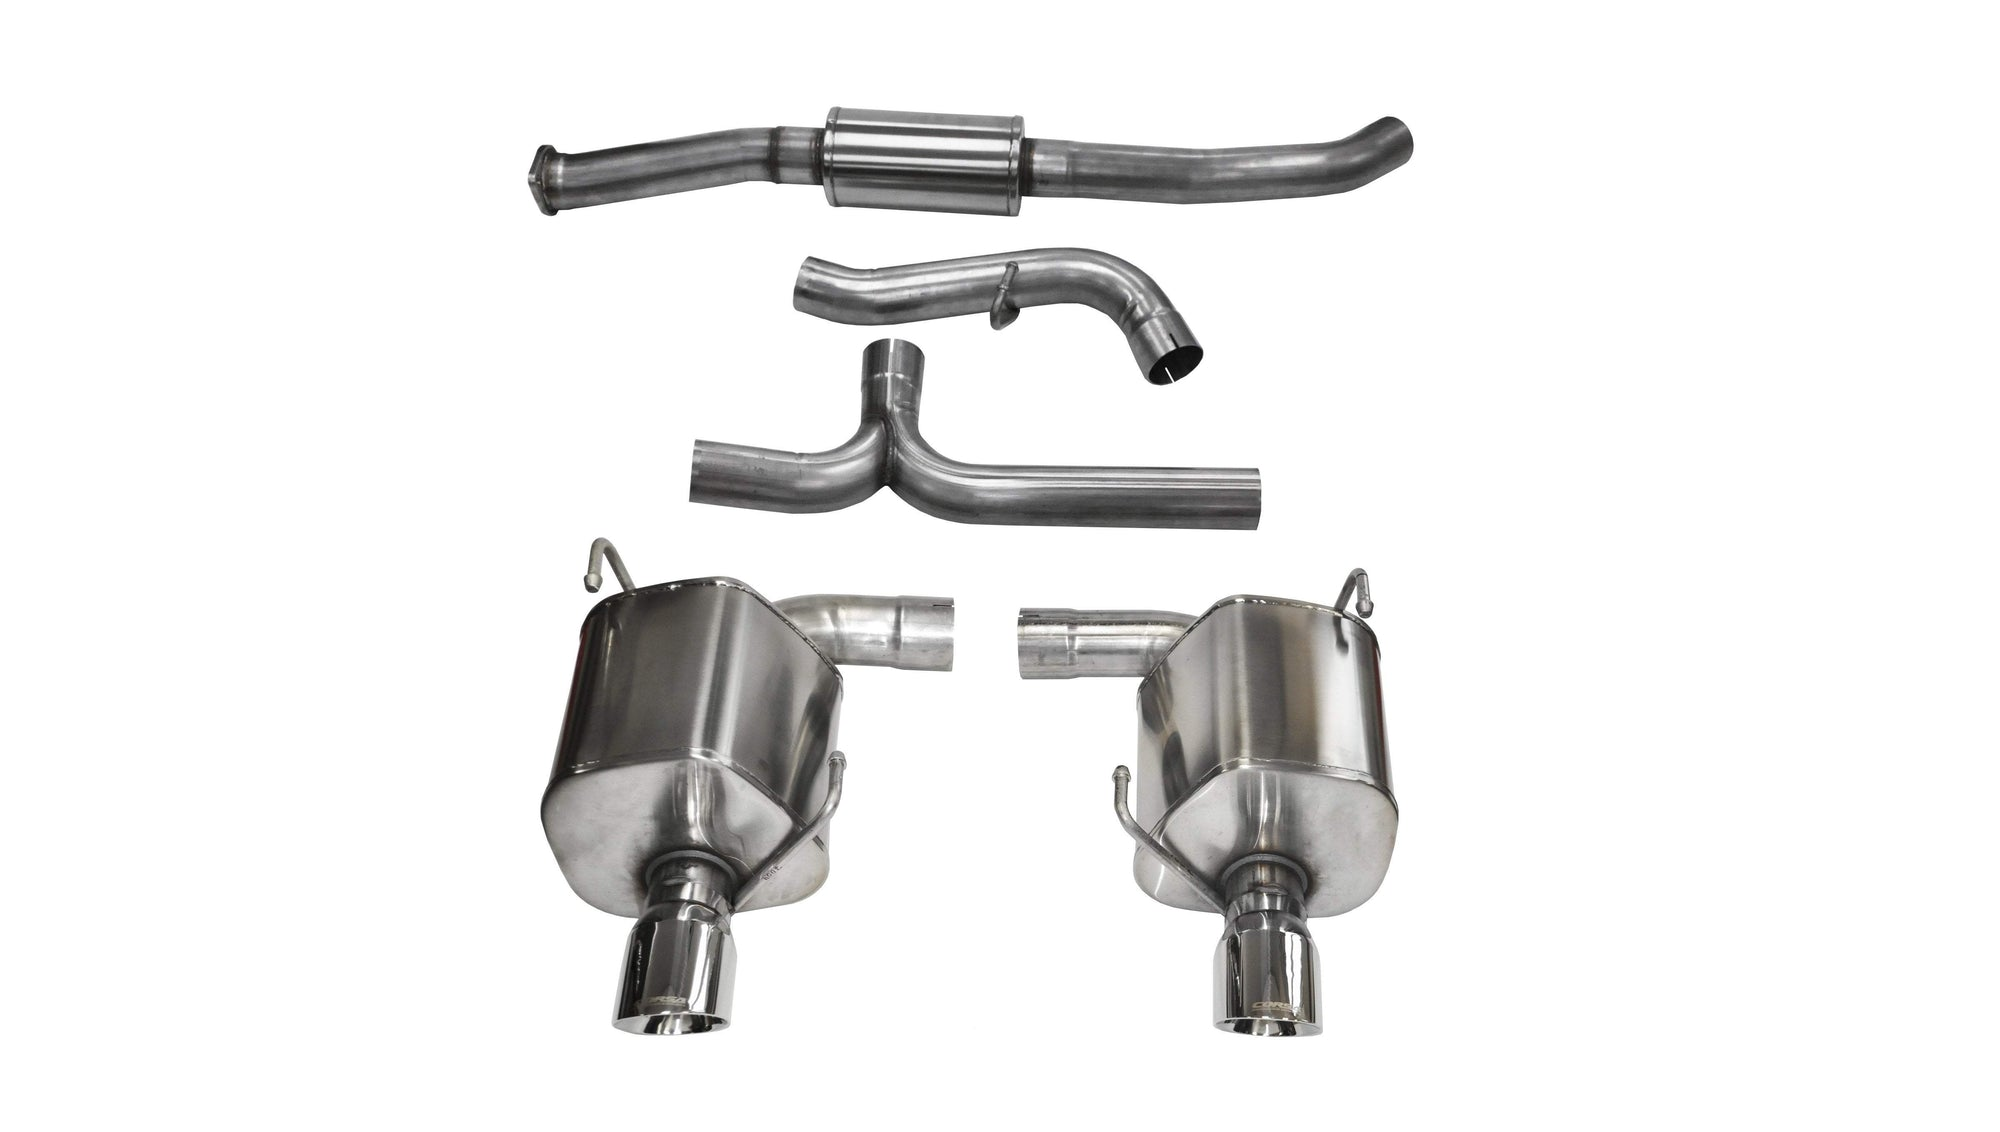 "CORSA PERFORMANCE Cat-Back Exhaust Polished / Sport / Dual Rear - Single 4in 2008-2010 Subaru Impreza WRX 2.5L. 3.0"" Dual Rear Exit Catback Exhaust System with Single 4.0"" Tips (14865) Sport Sound Level"